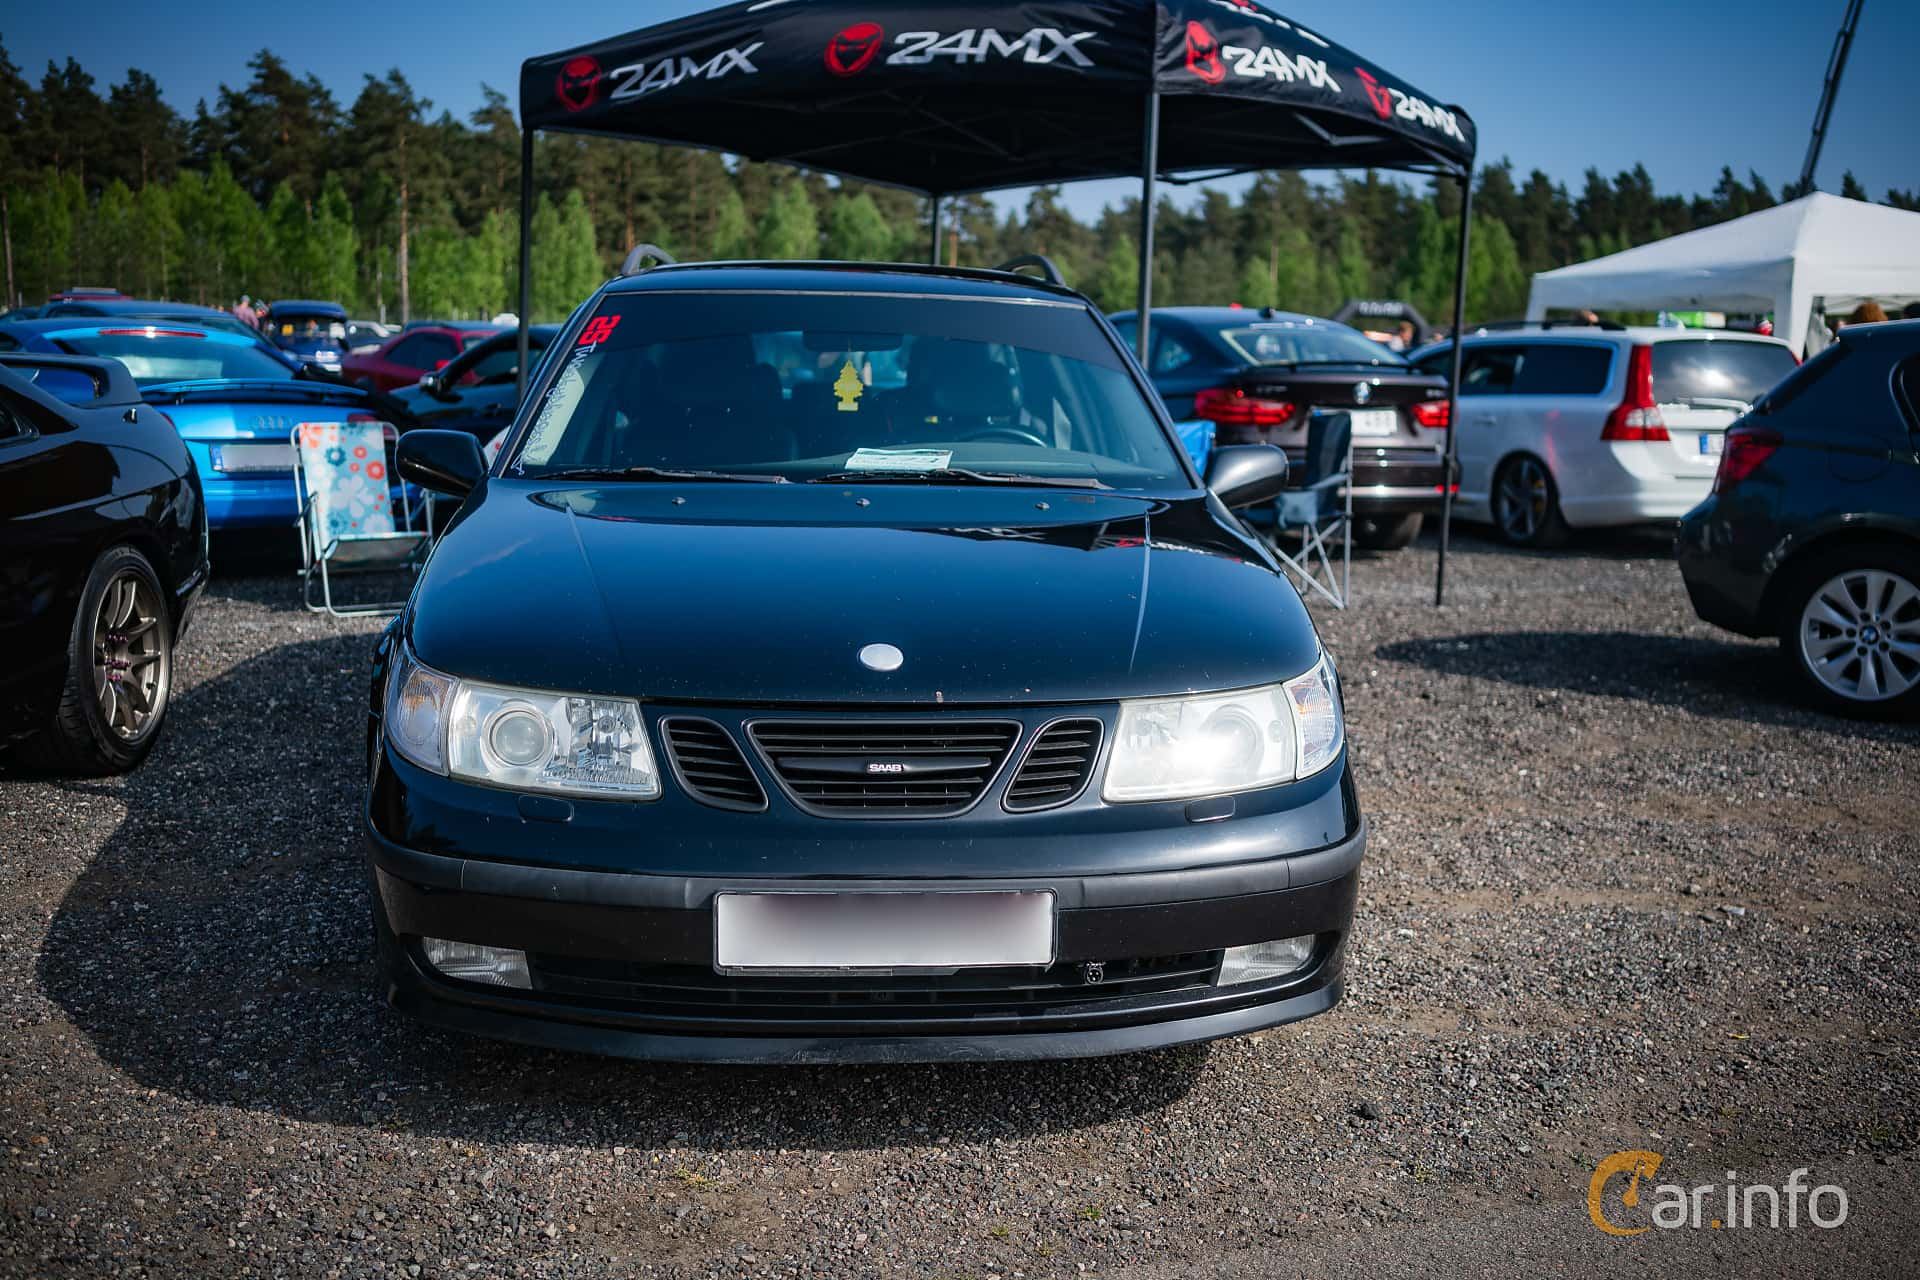 Front of Saab 9-5 Aero SportCombi 2.3 Turbo Manual, 250ps, 2002 at